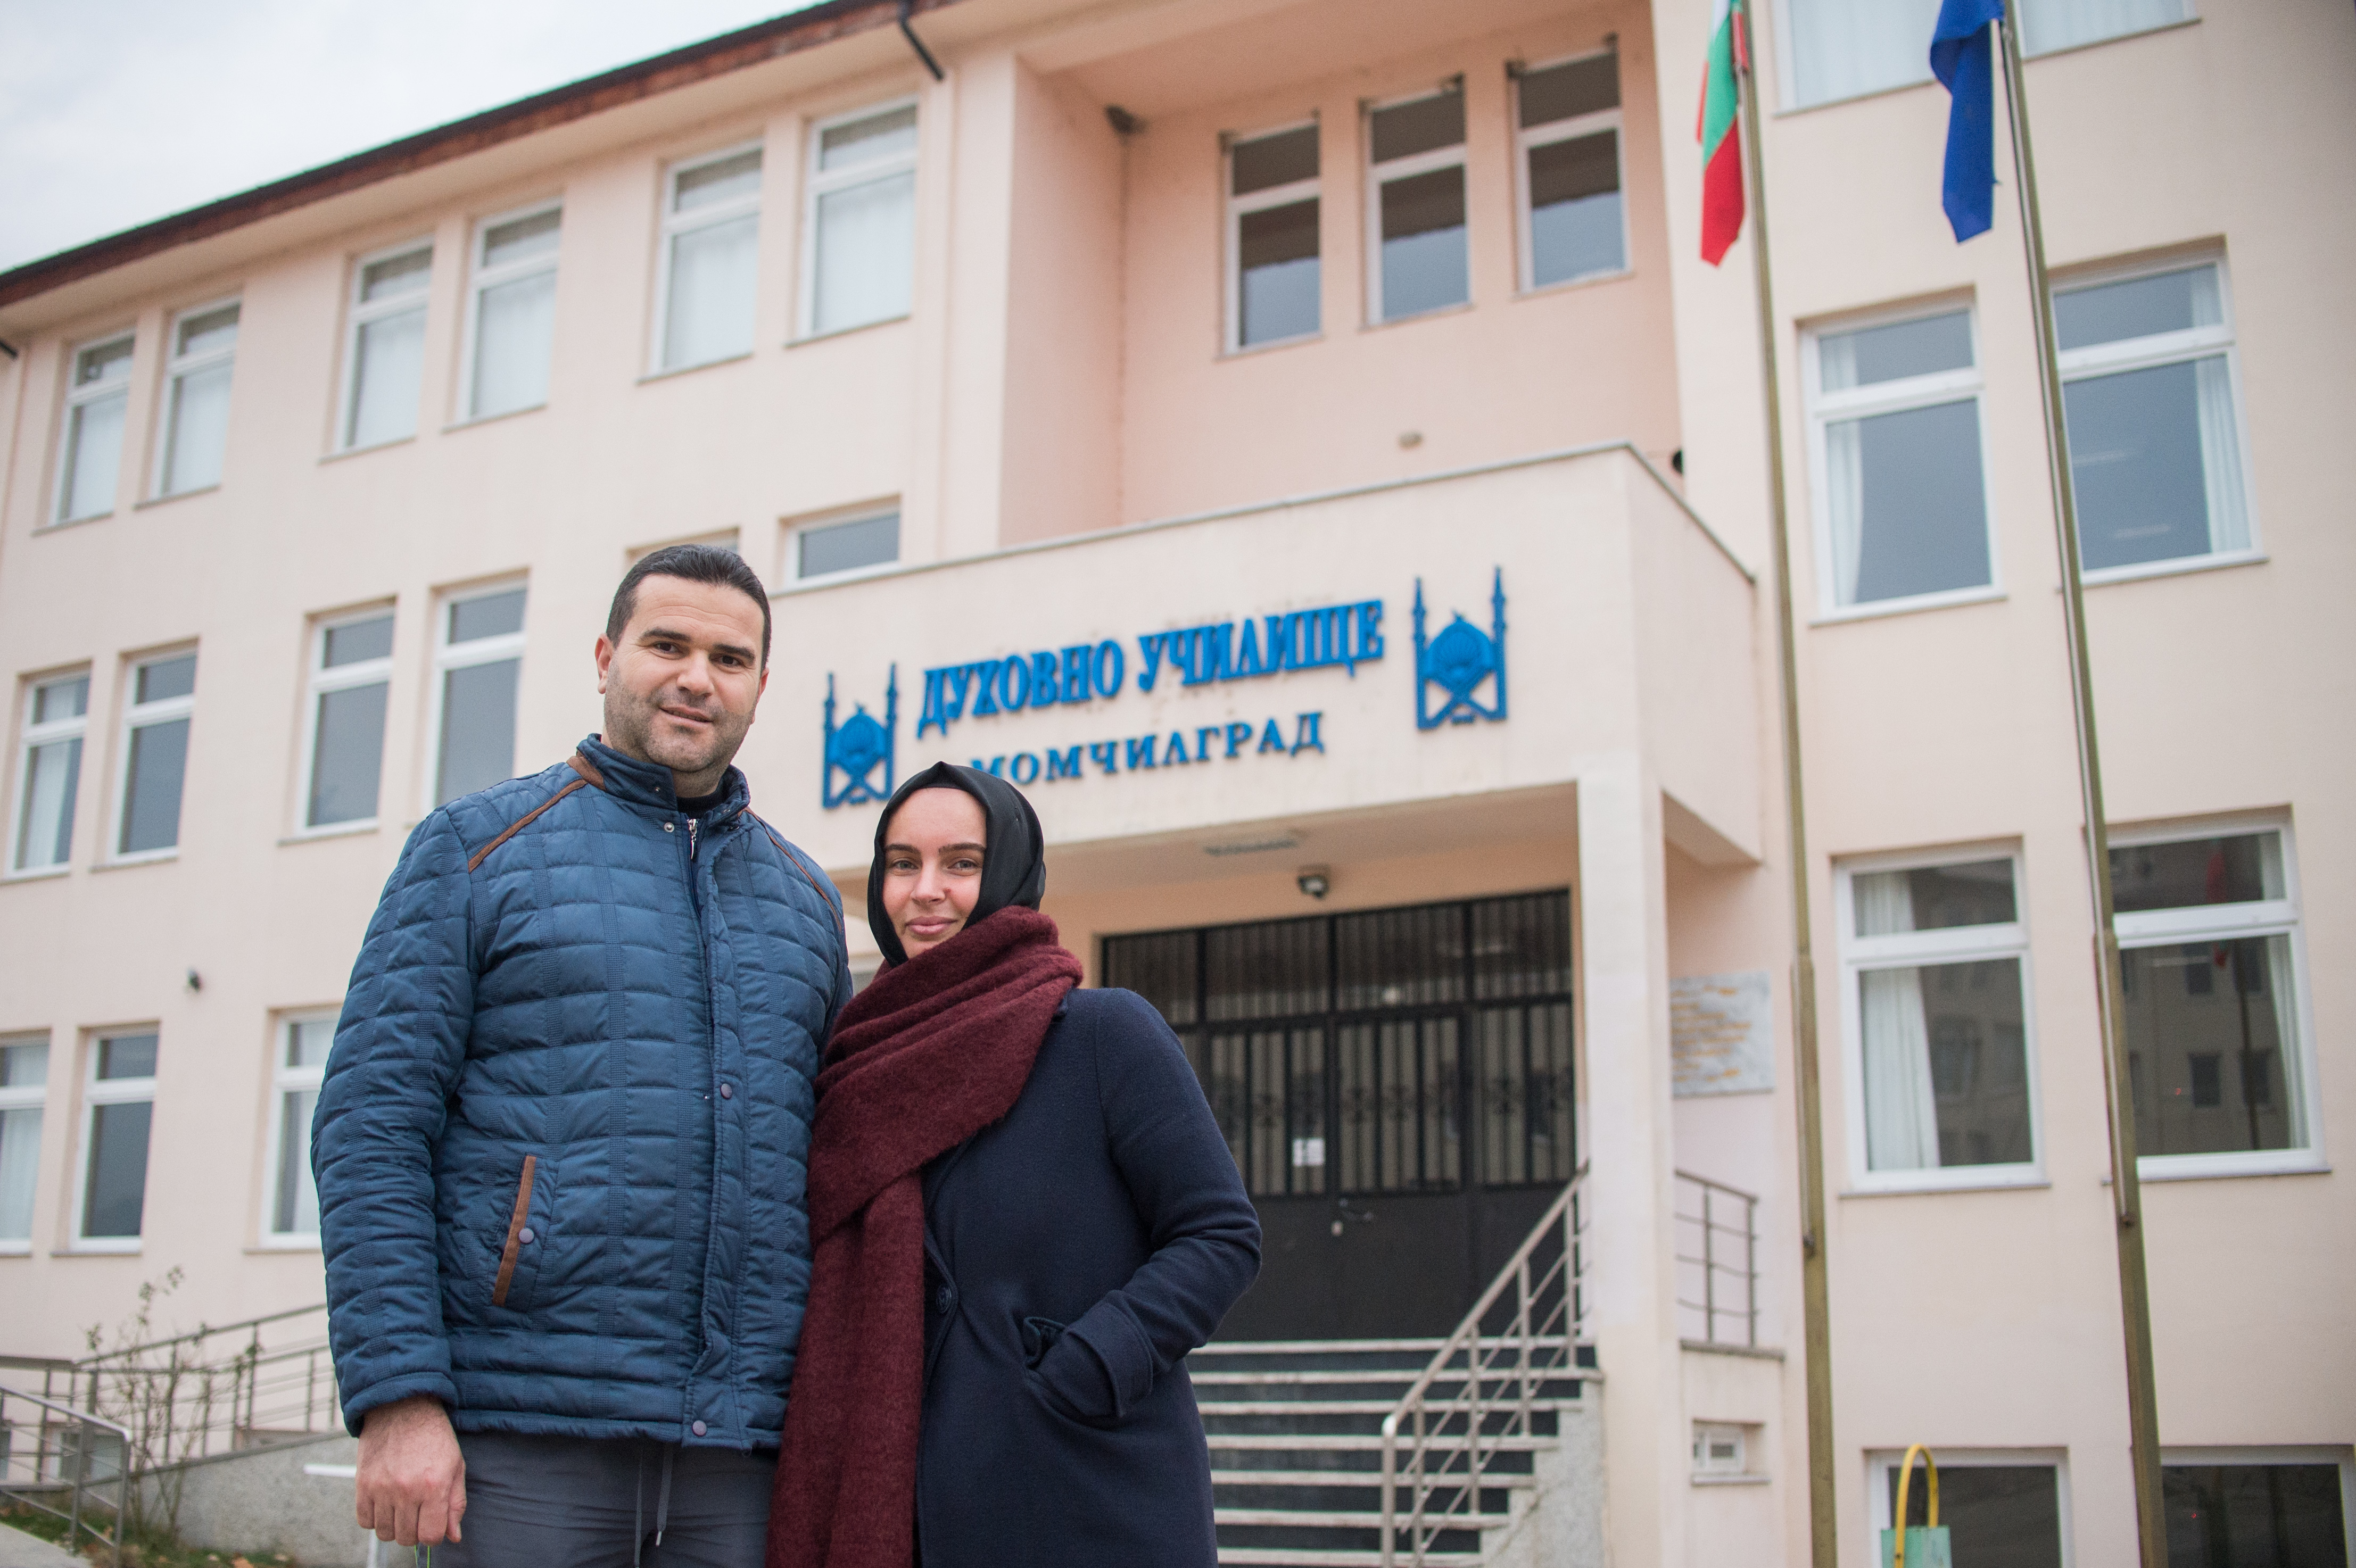 Fikrie Bozova, teacher and her husband Mehmed Bozov pose for a photo in front of the Muslim Theological School in the town of Momchilgrad on December 6, 2020. NIKOLAY DOYCHINOV for AufRuhr